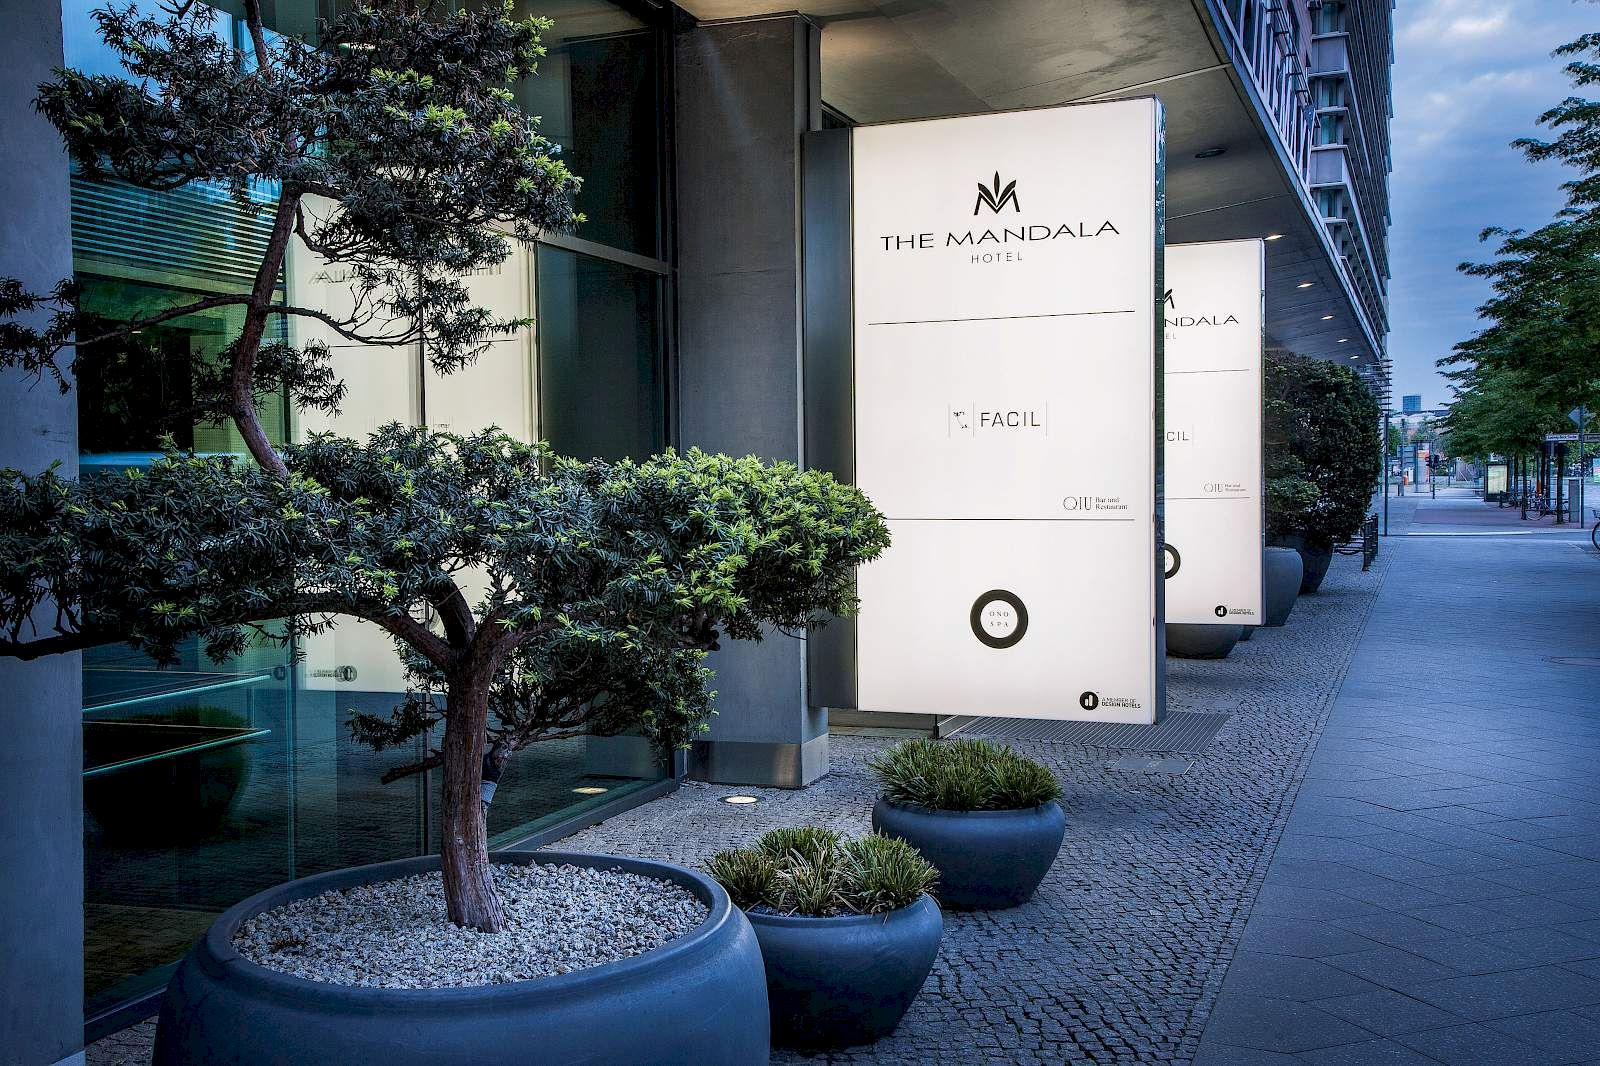 The stylish entrance of THE MANDALA HOTEL in Berlin